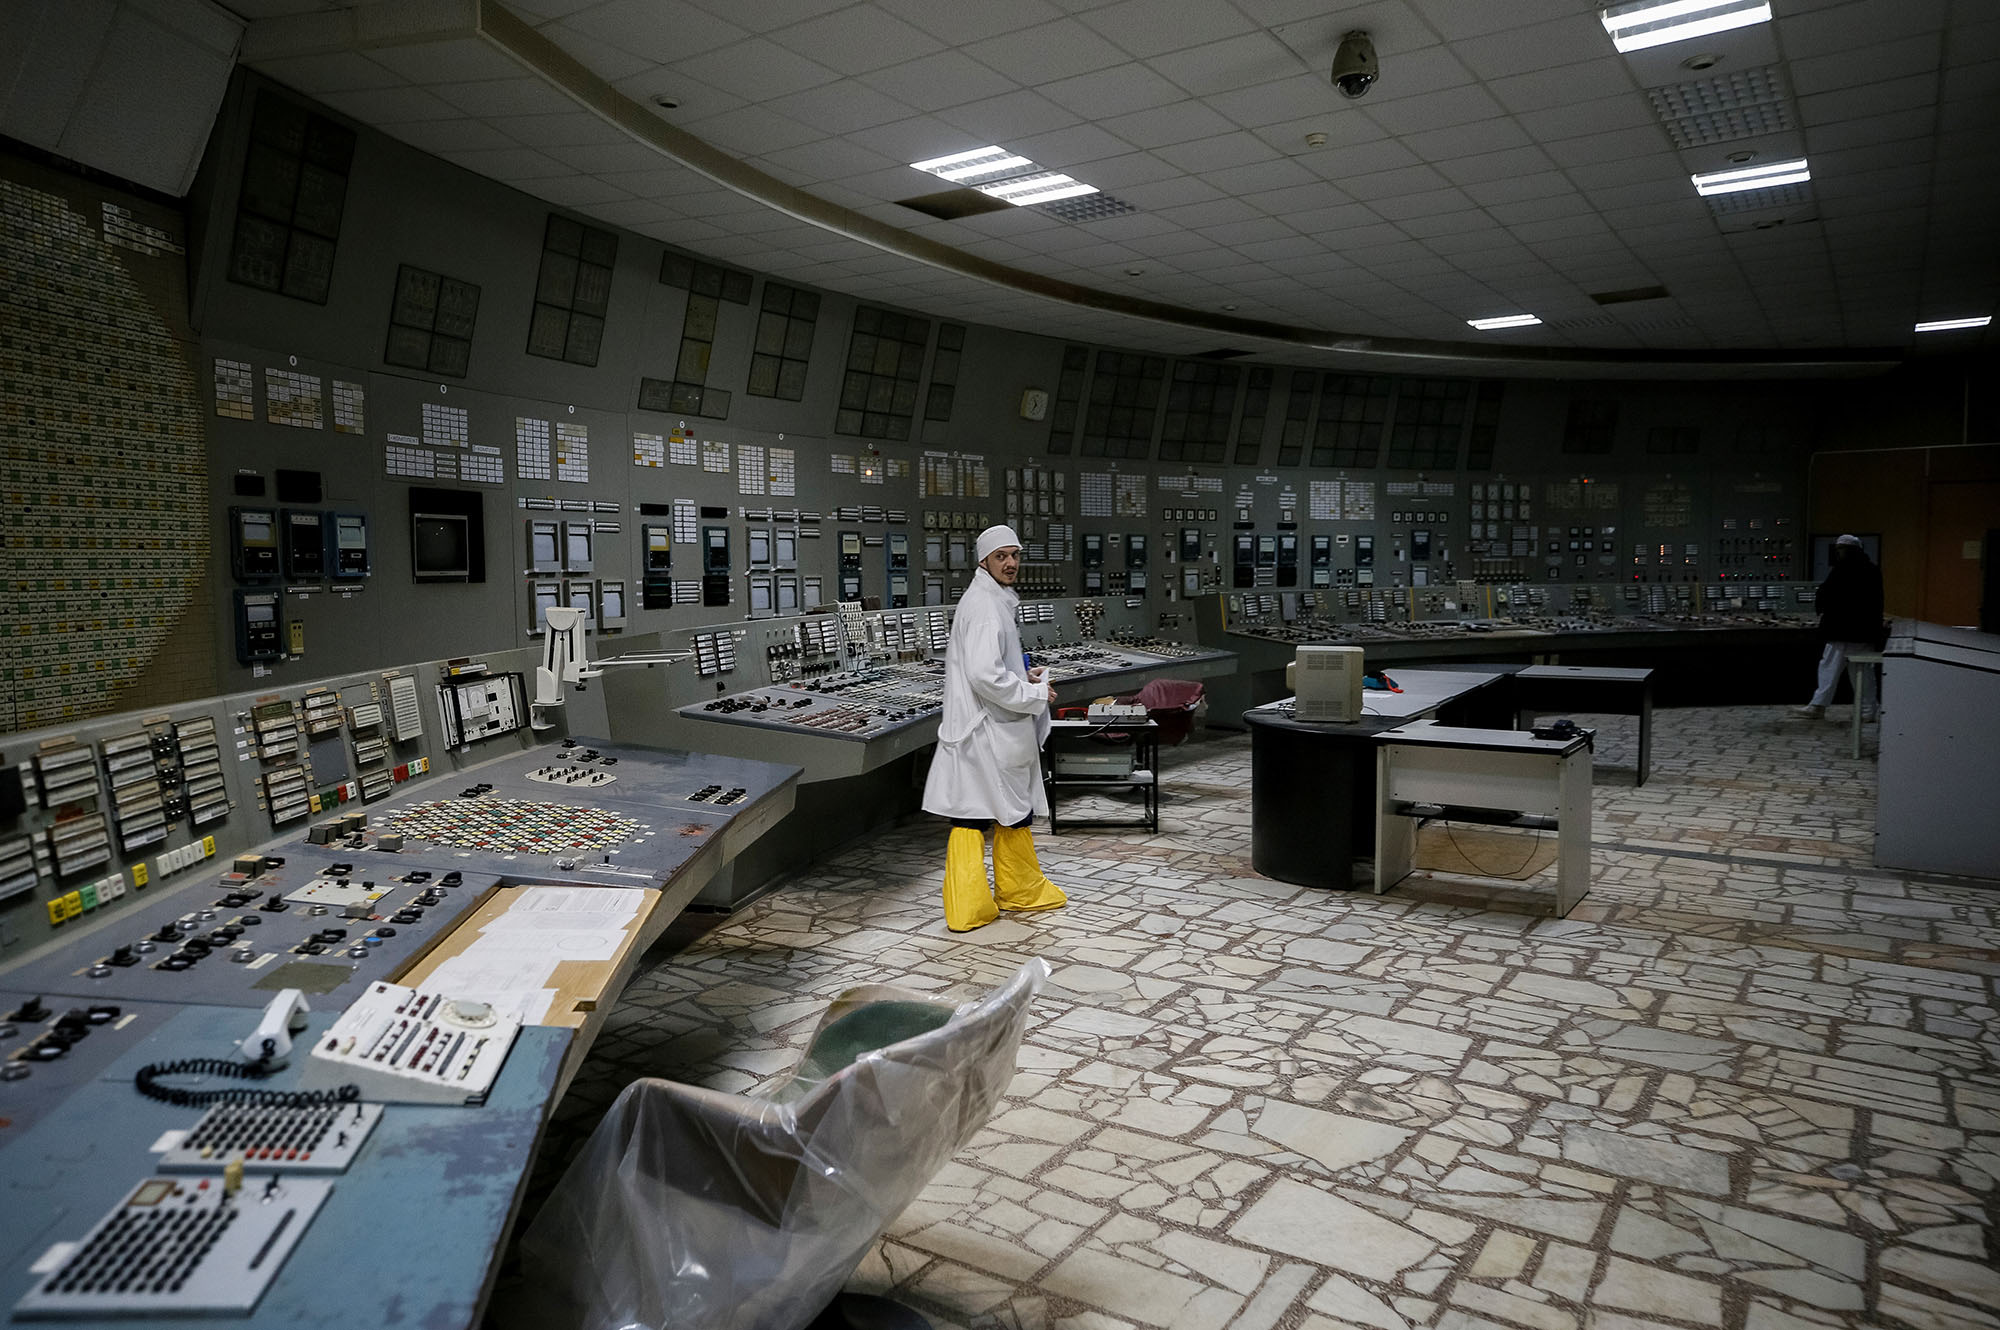 Visiting Chernobyl 32 Years After the Disaster - The Atlantic